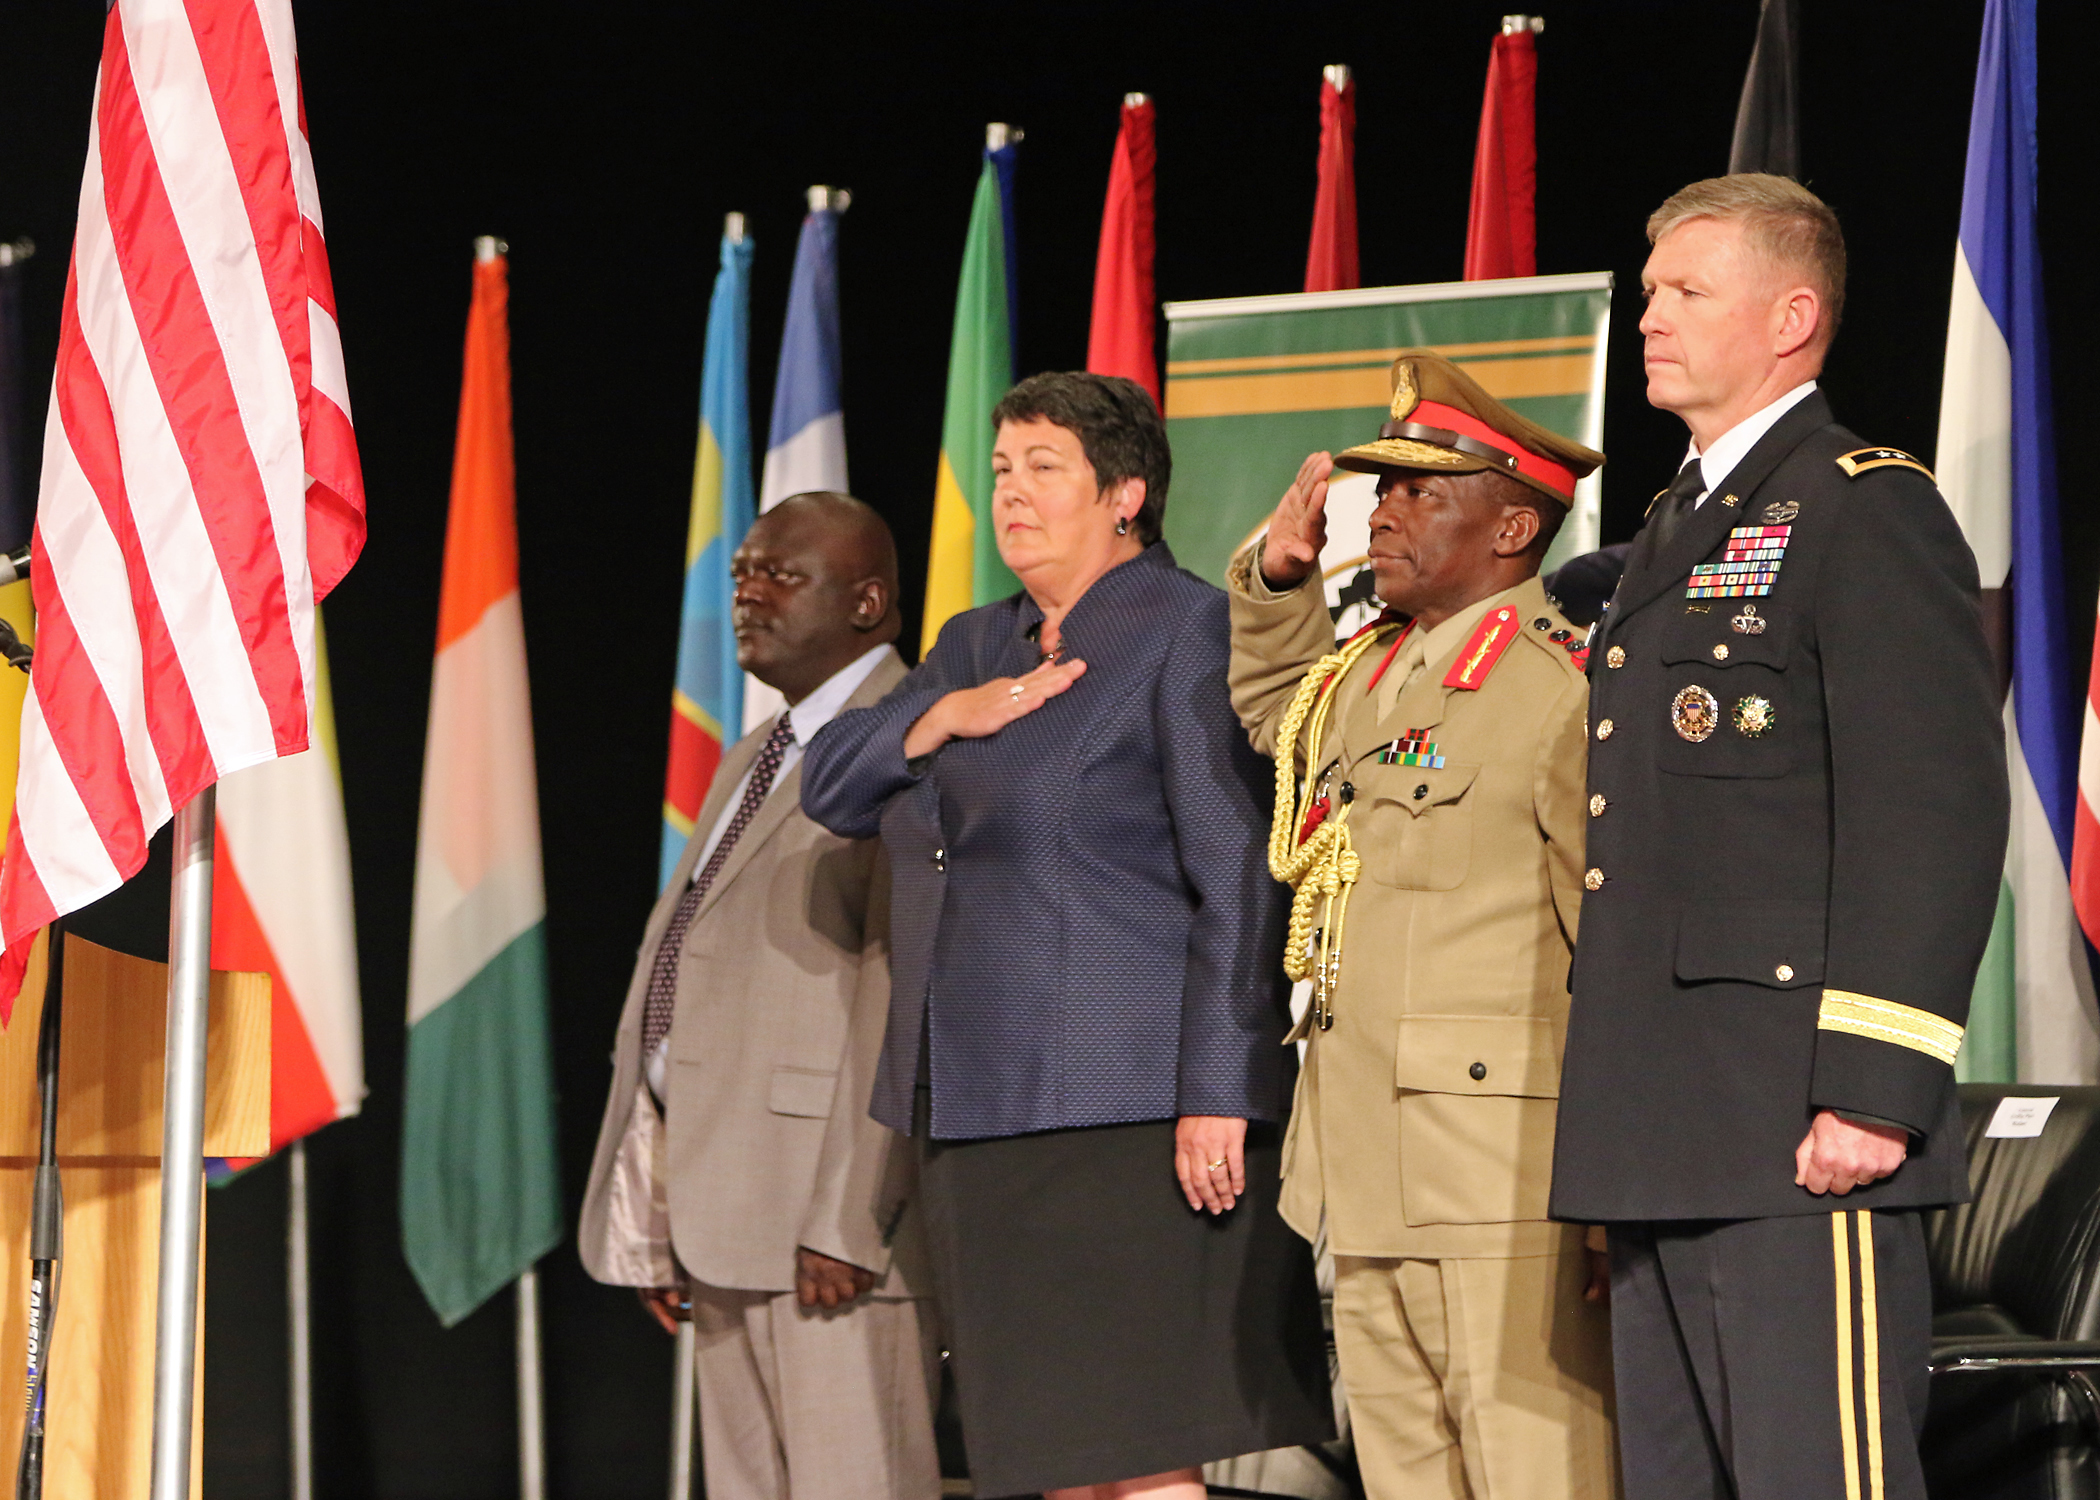 "From left to right: Vincent Ghambi, Deputy Minister of Defense for Malawi, Virginia Palmer, American Ambassador to Malawi, Gen. Griffin ""Spoon"" Phiri, Malawi Defense Force chief of staff, and Maj. Gen. Joseph Harrington, commander of U.S. Army Africa, stand for the Malawi national anthem the closing ceremony of African Land Forces Summit 2017, in Lilongwe, Malawi, May 11, 2017. ALFS is an annual, weeklong seminar bringing together land force chiefs from across Africa for candid dialog to discuss and develop cooperative solutions to regional and transregional challenges and threats. (U.S. Army photo by Sgt. Paige Behringer/Released)"